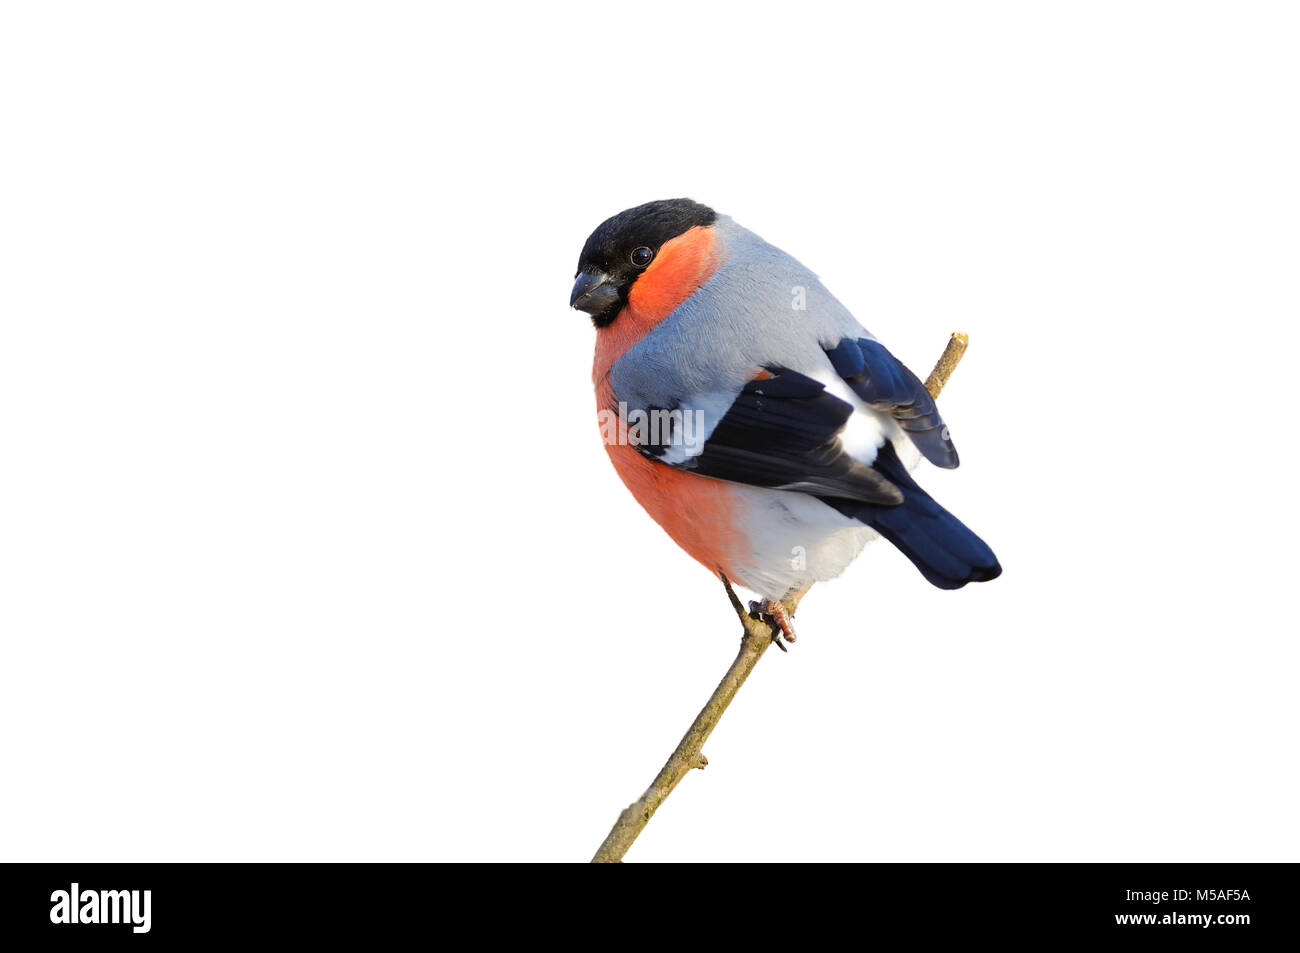 Eurasian (common) bullfinch (Pyrrhula pyrrhula) sitting on a branch (isolated on a white background). Stock Photo